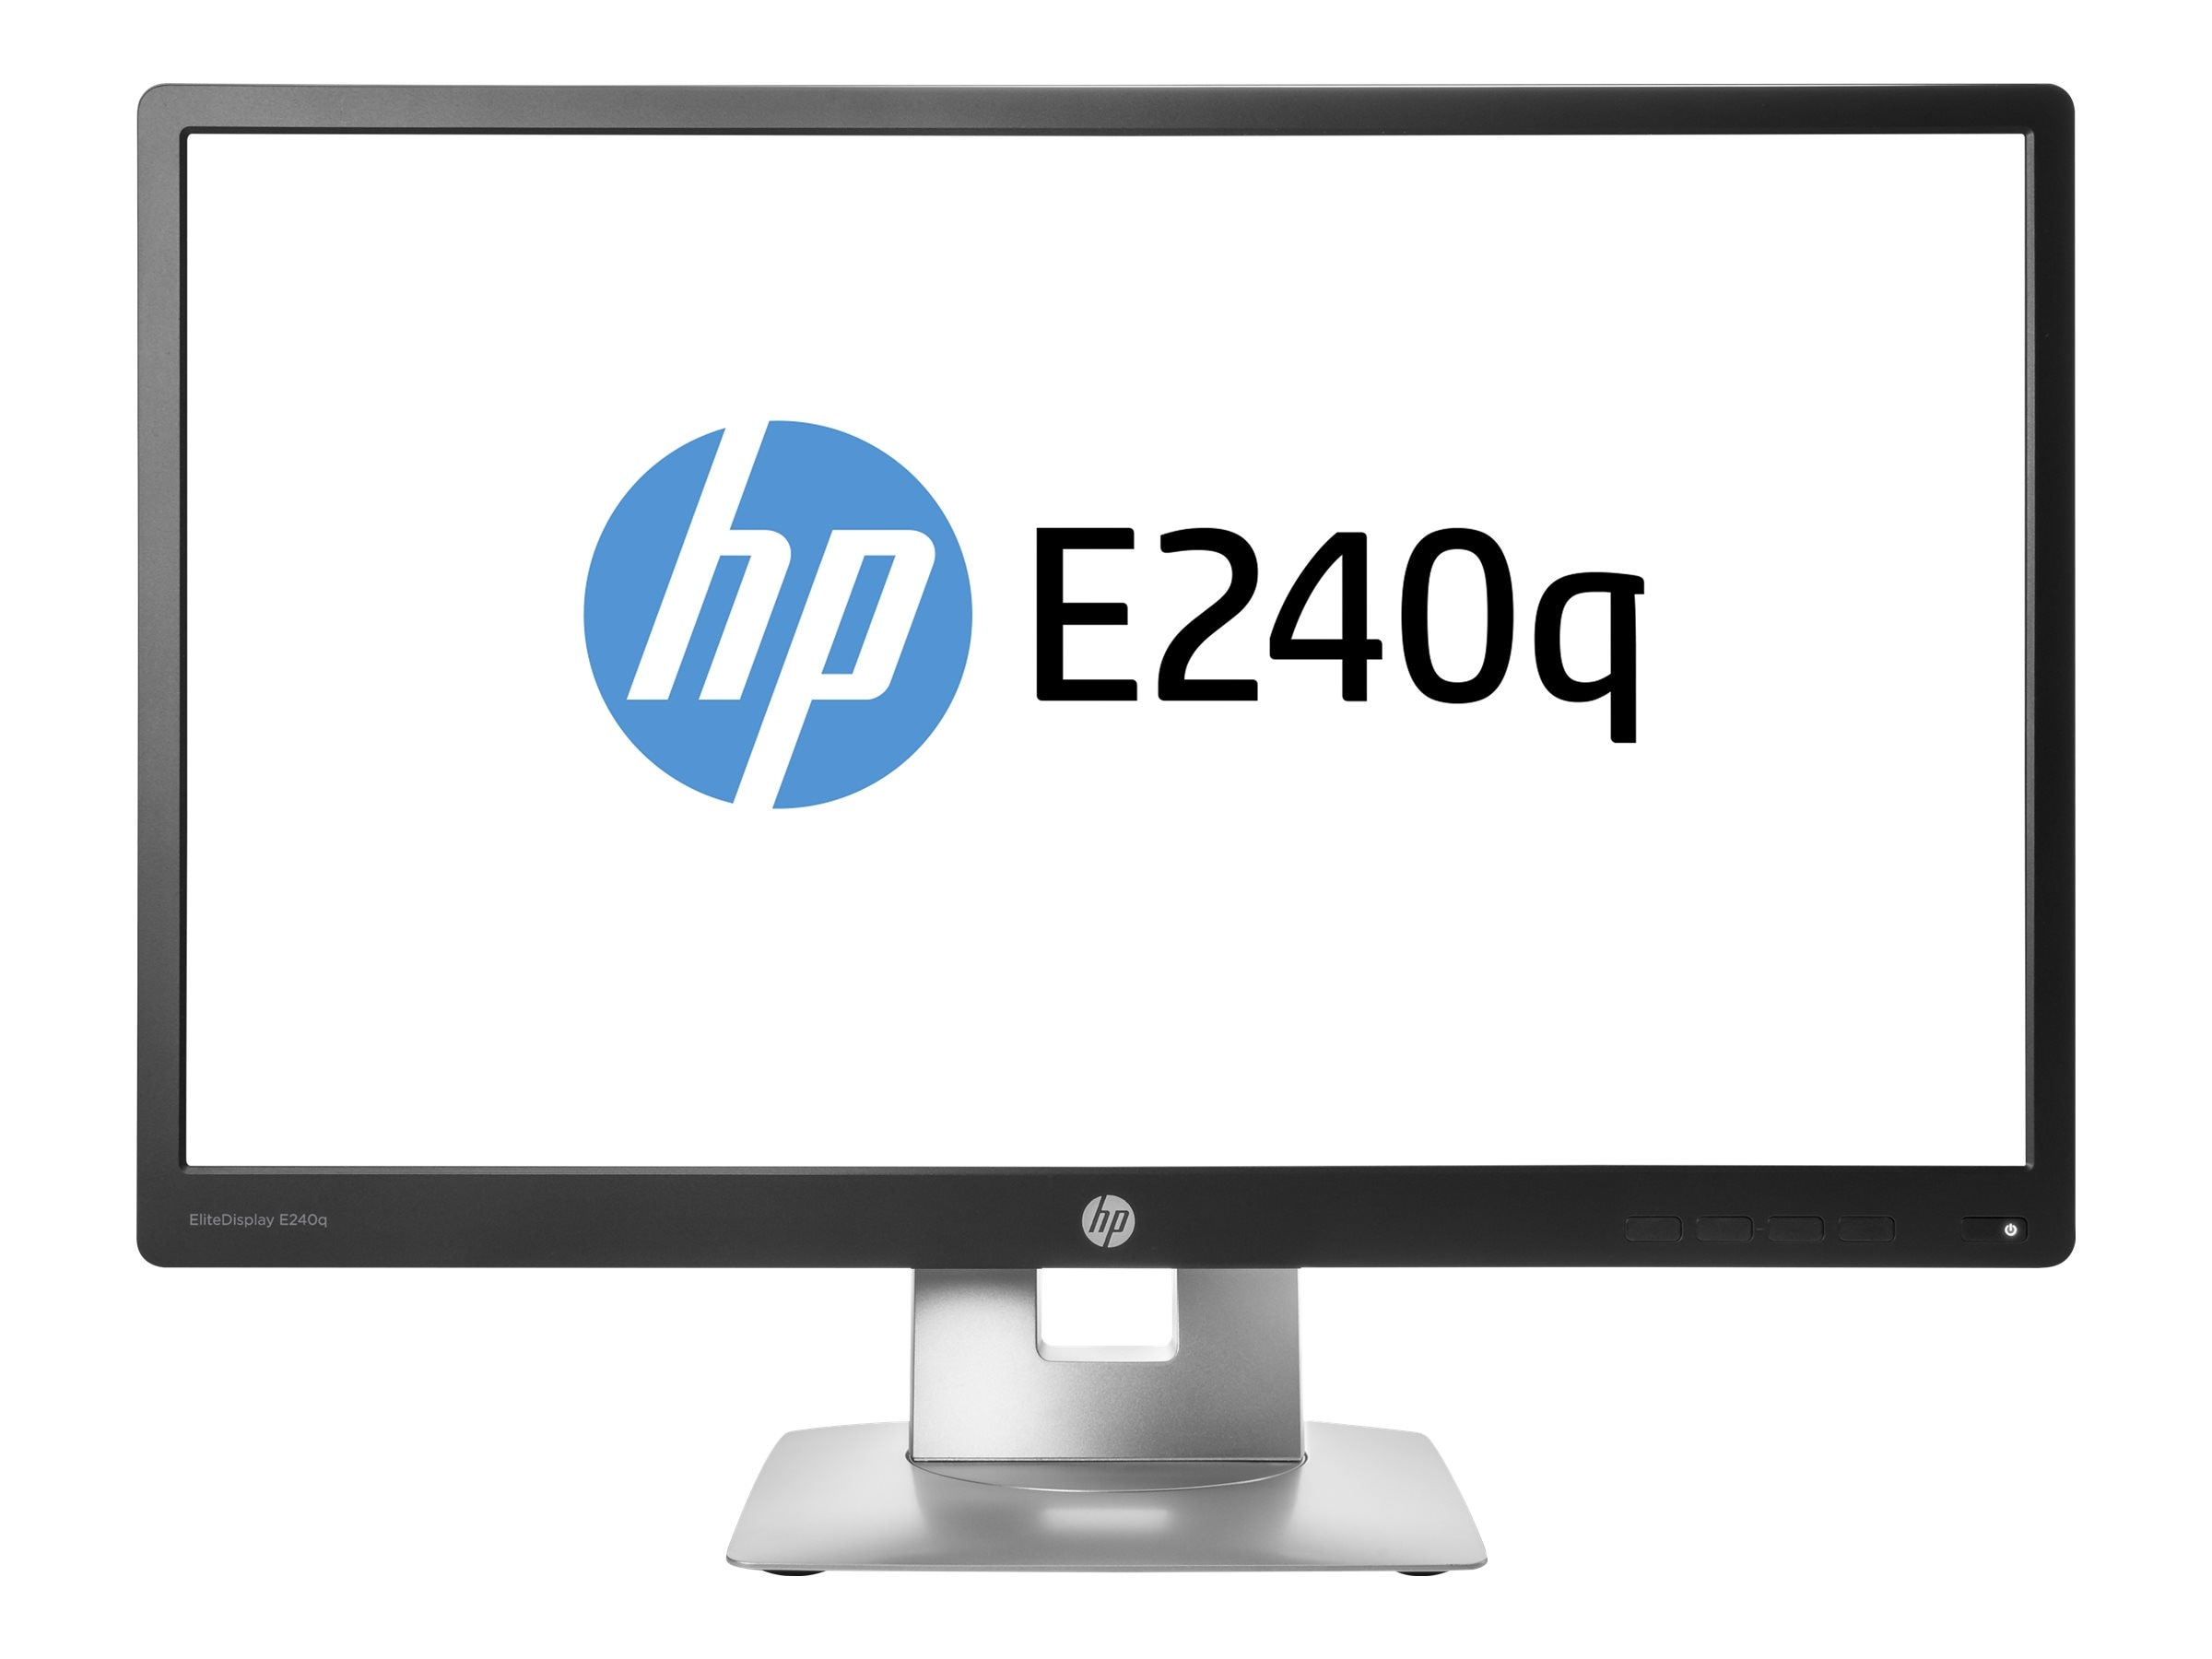 HP Smart Buy 23.8 E240Q QHD LED-LCD Monitor, Black, M1P01A8#ABA, 30737388, Monitors - LED-LCD